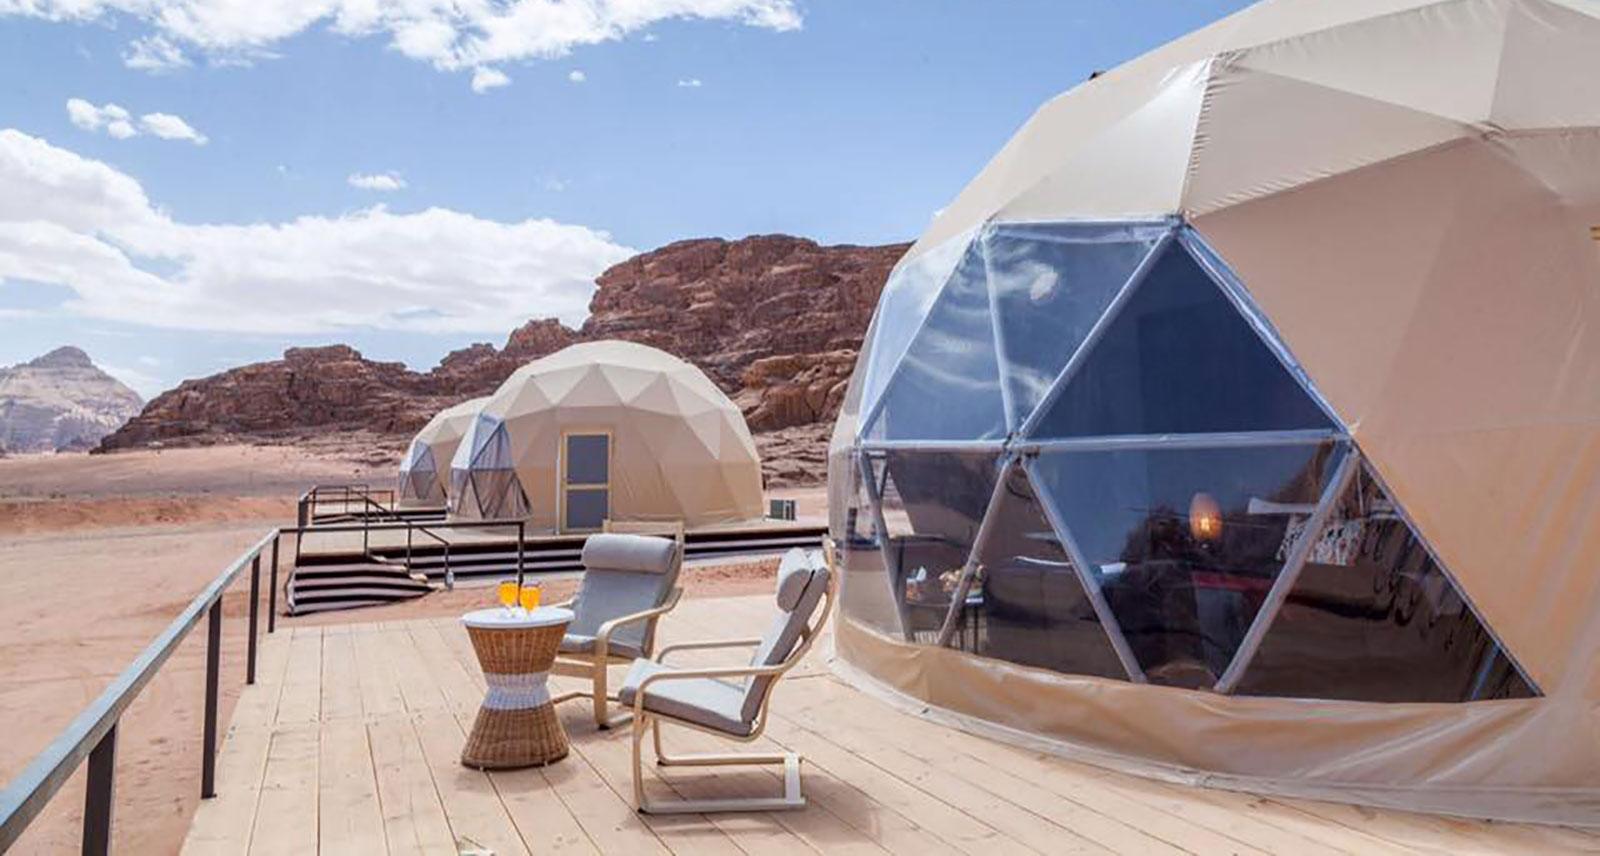 This Dome Hotel in the Jordan Desert Is the Next Best Thing to Visiting Mars